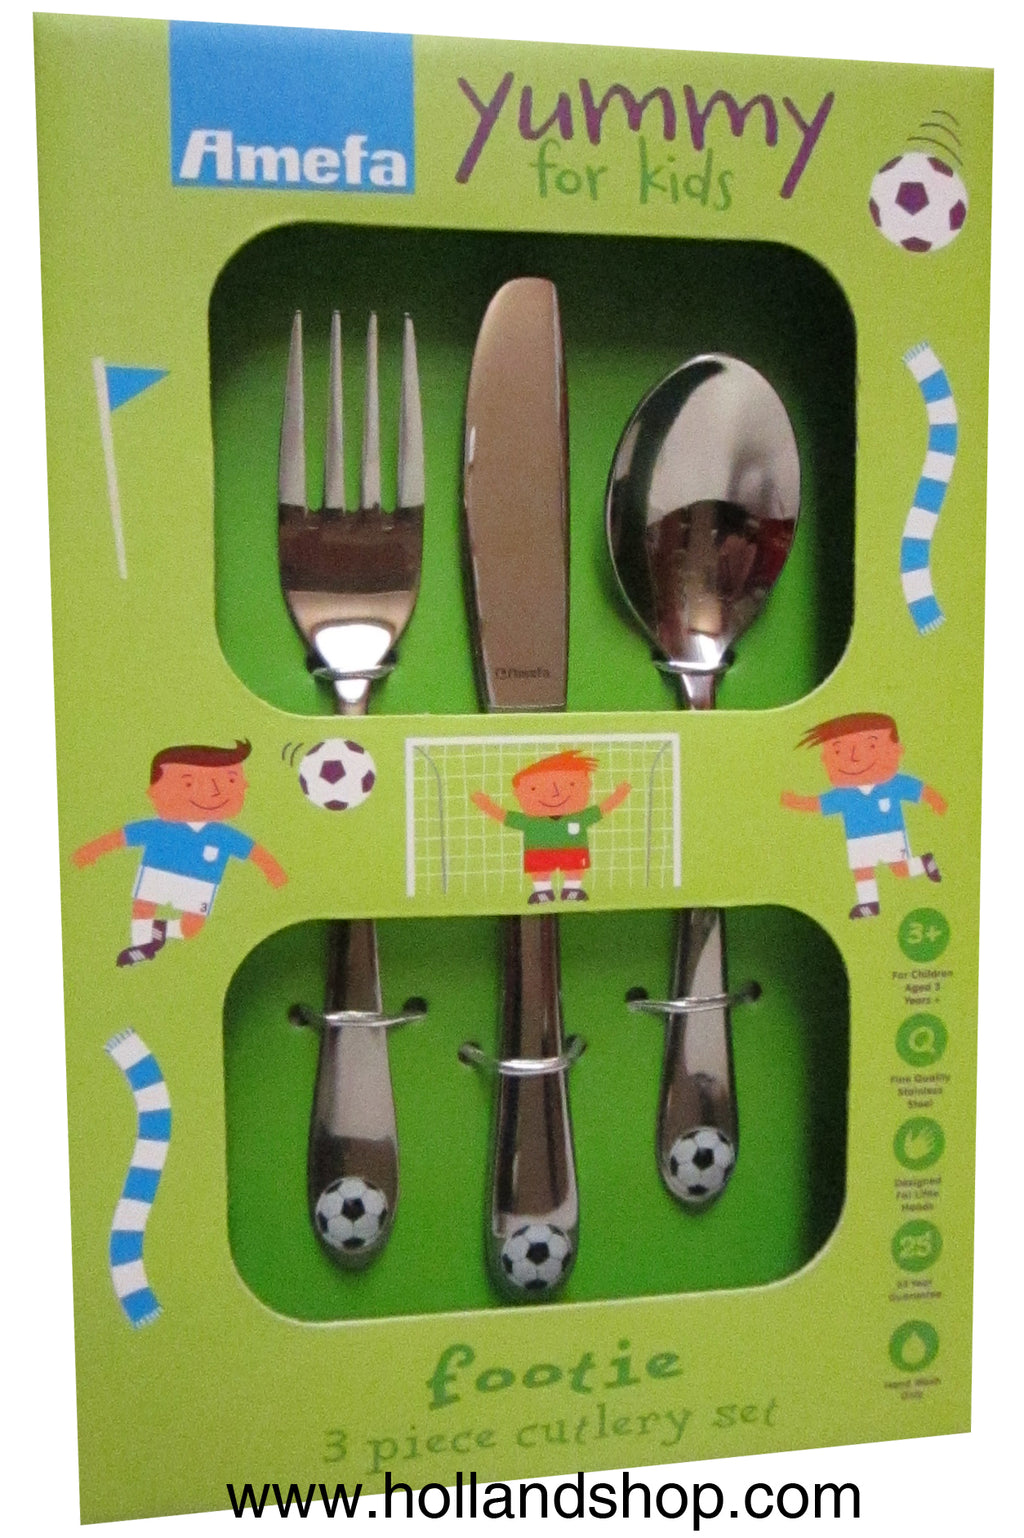 Child Cutlery Set - Amefa Soccer #8422 (Set of 3)